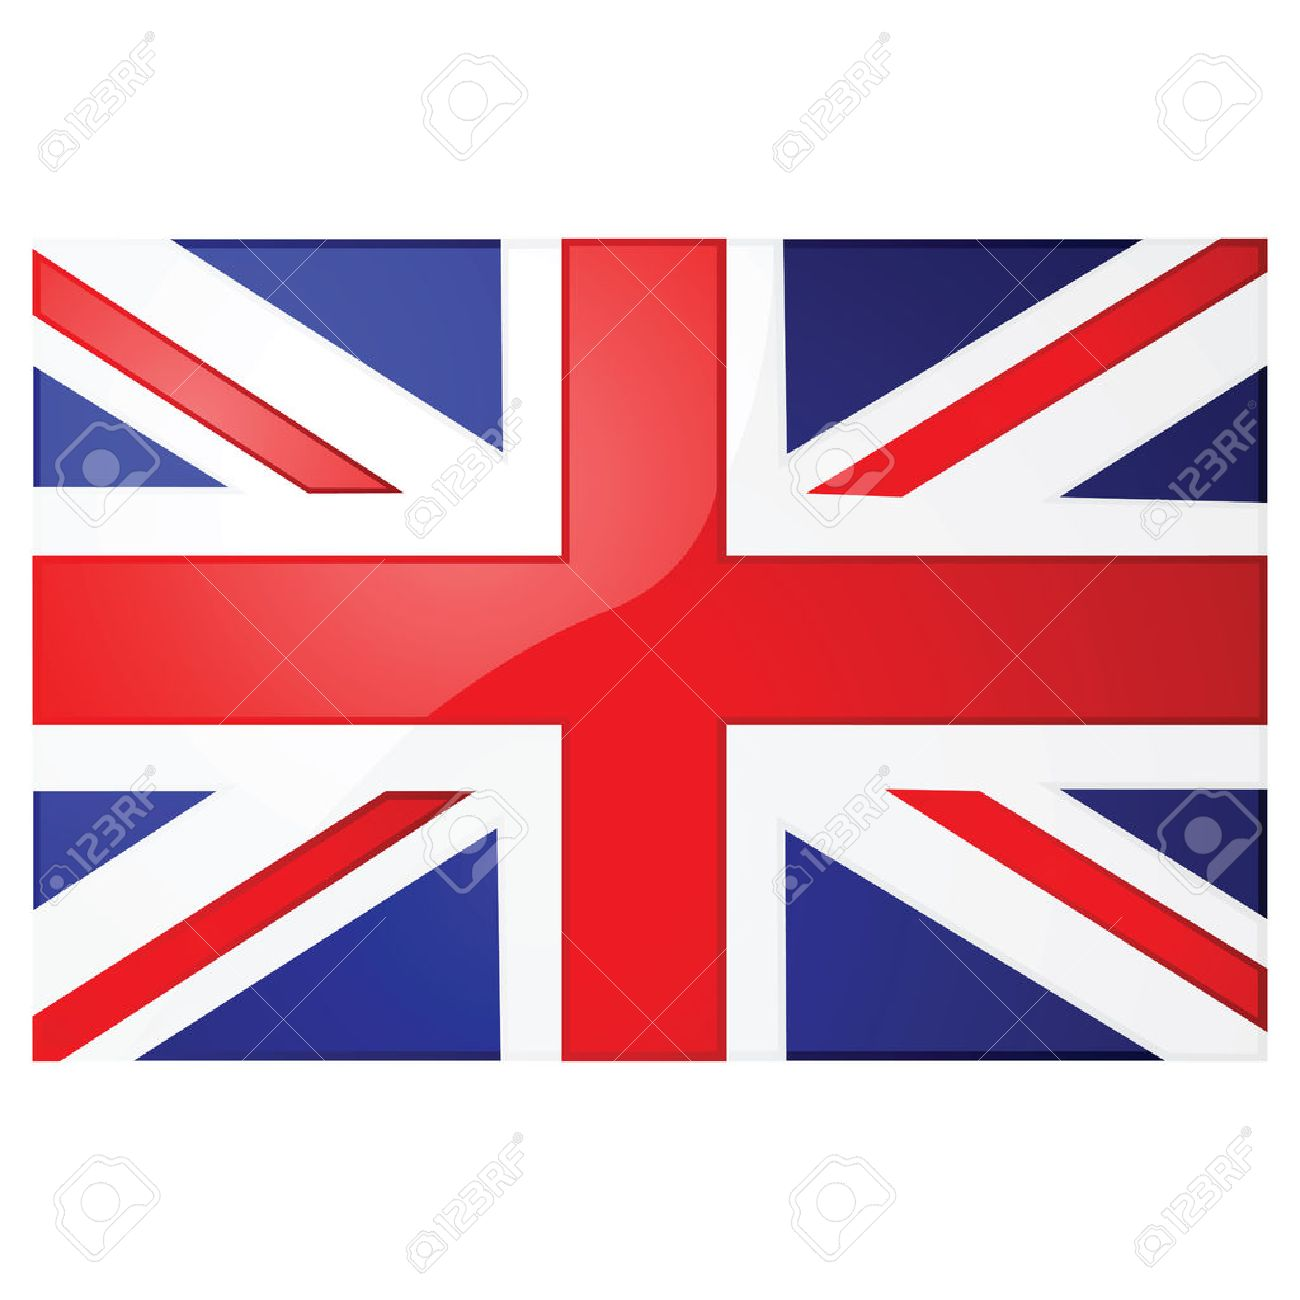 glossy illustration of the union jack the british flag royalty free rh 123rf com british flag vector art british flag vector ai